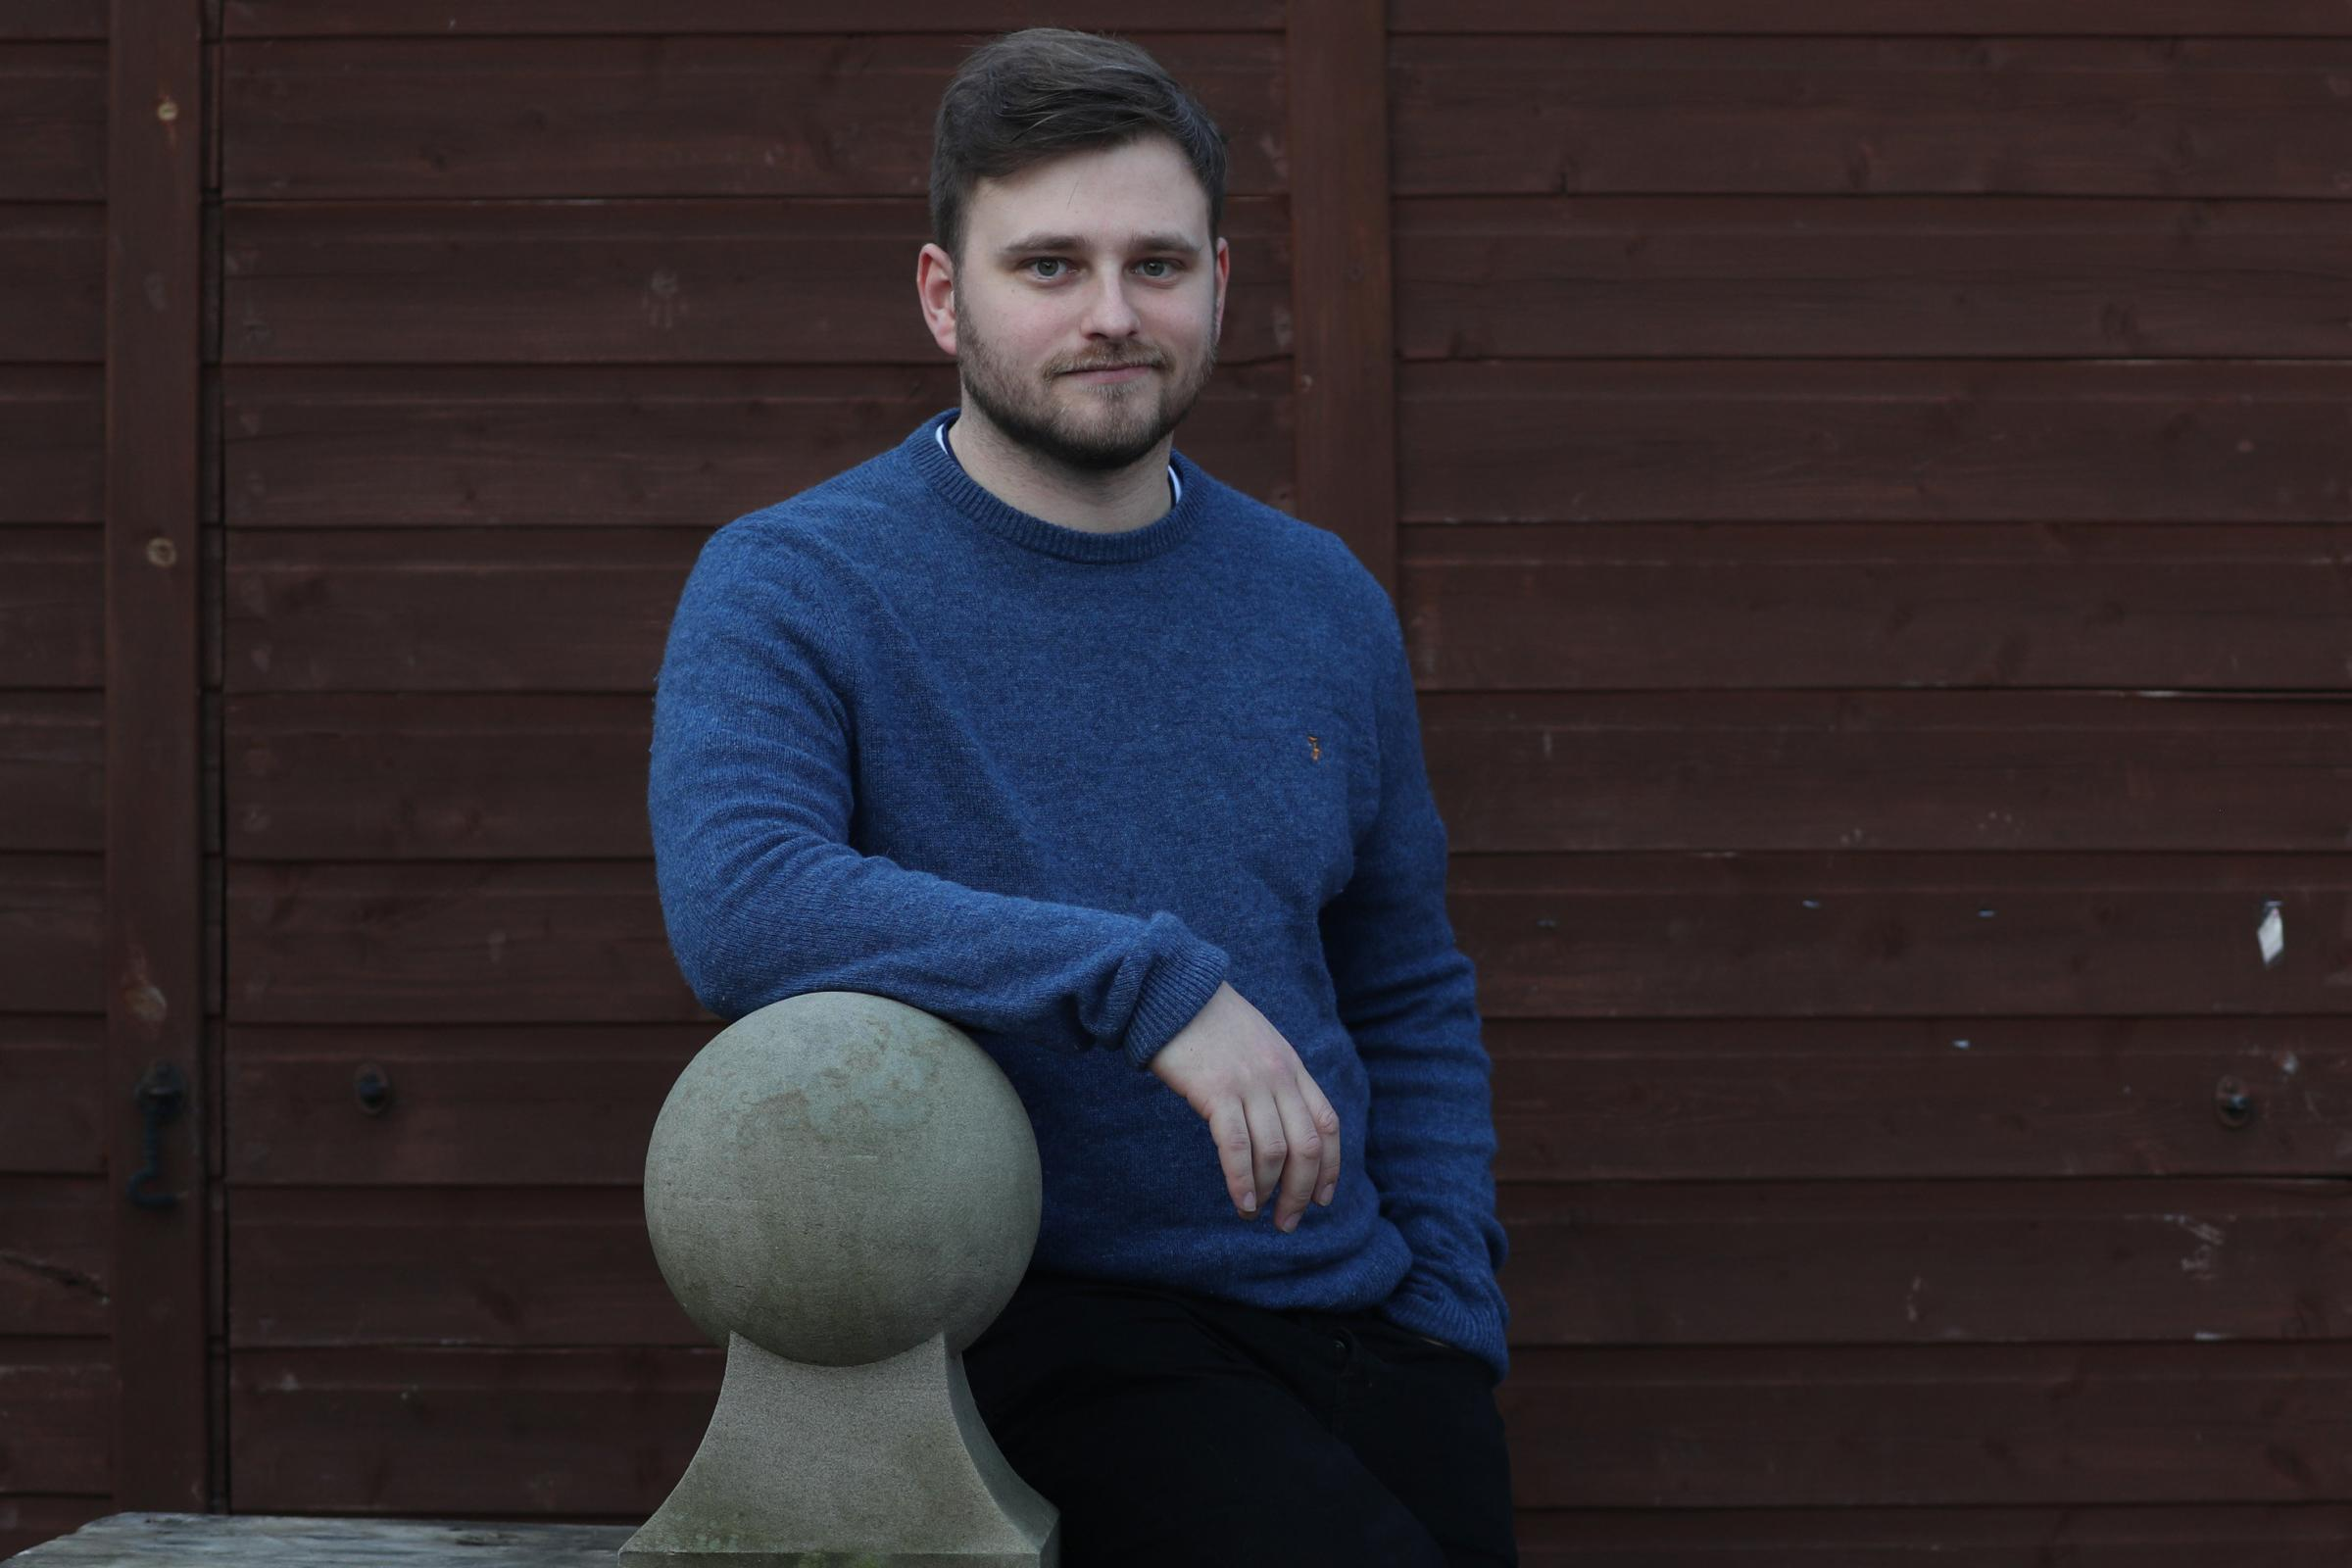 Michael Lambie is a 26-year-old stonemason from East Wemyss planning to relocate to Canada in the summer.